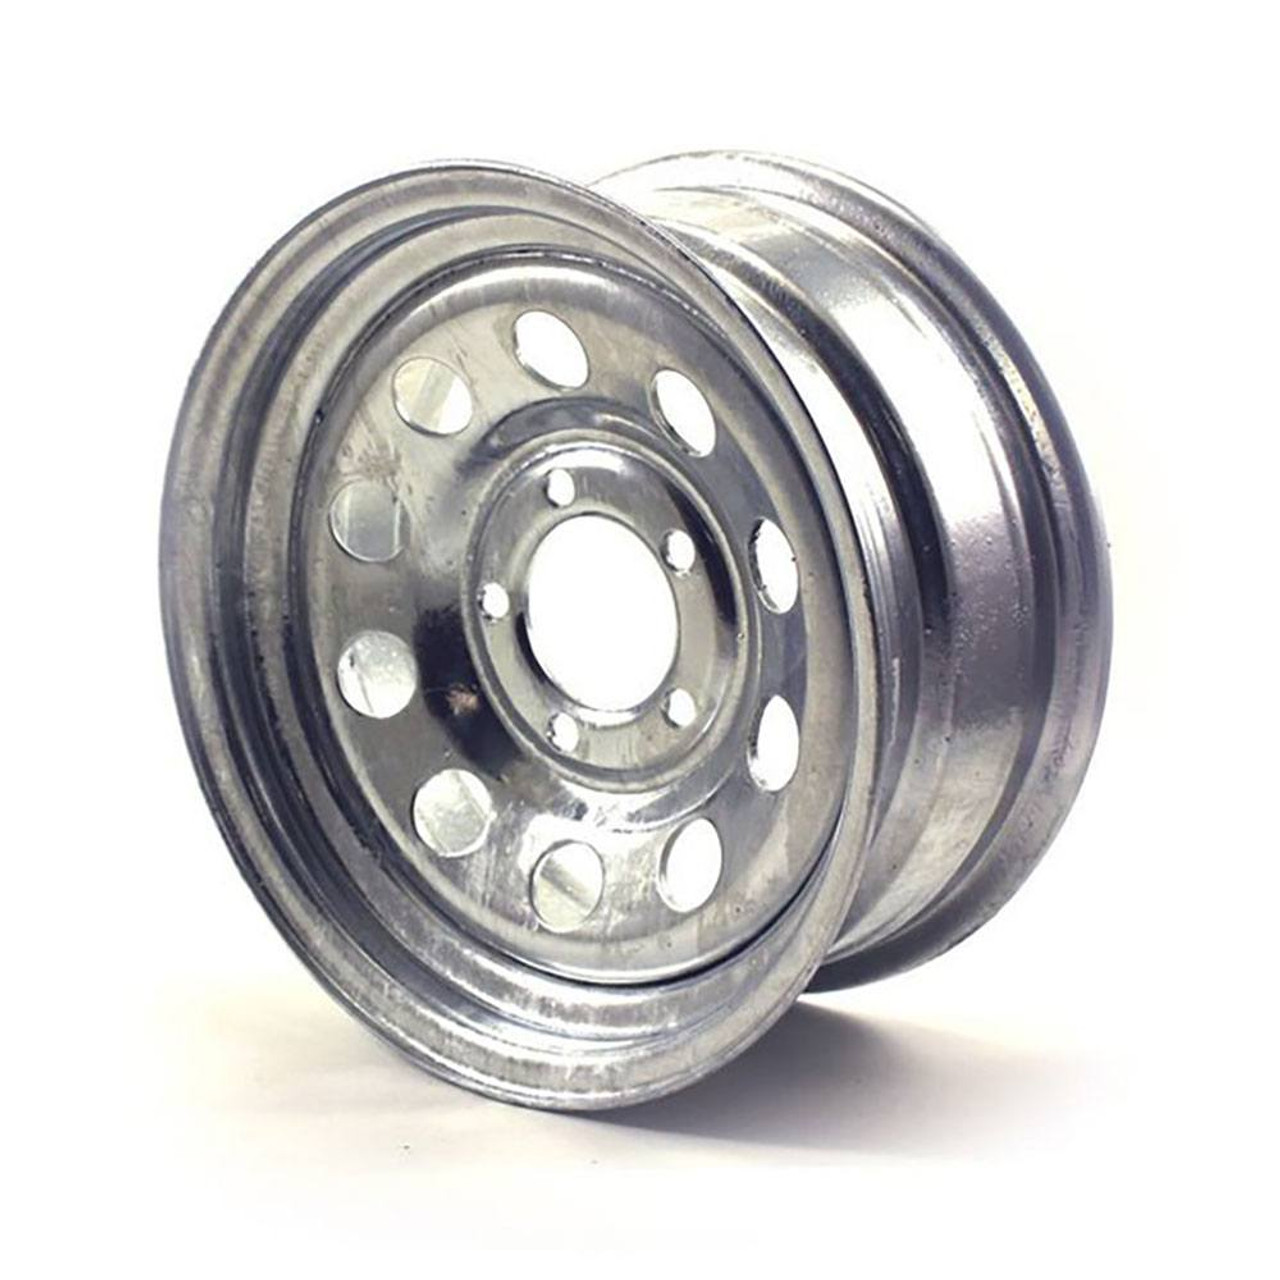 "14X5.5 5-Lug on 4.5"" Galvanized Mod Trailer Wheel"